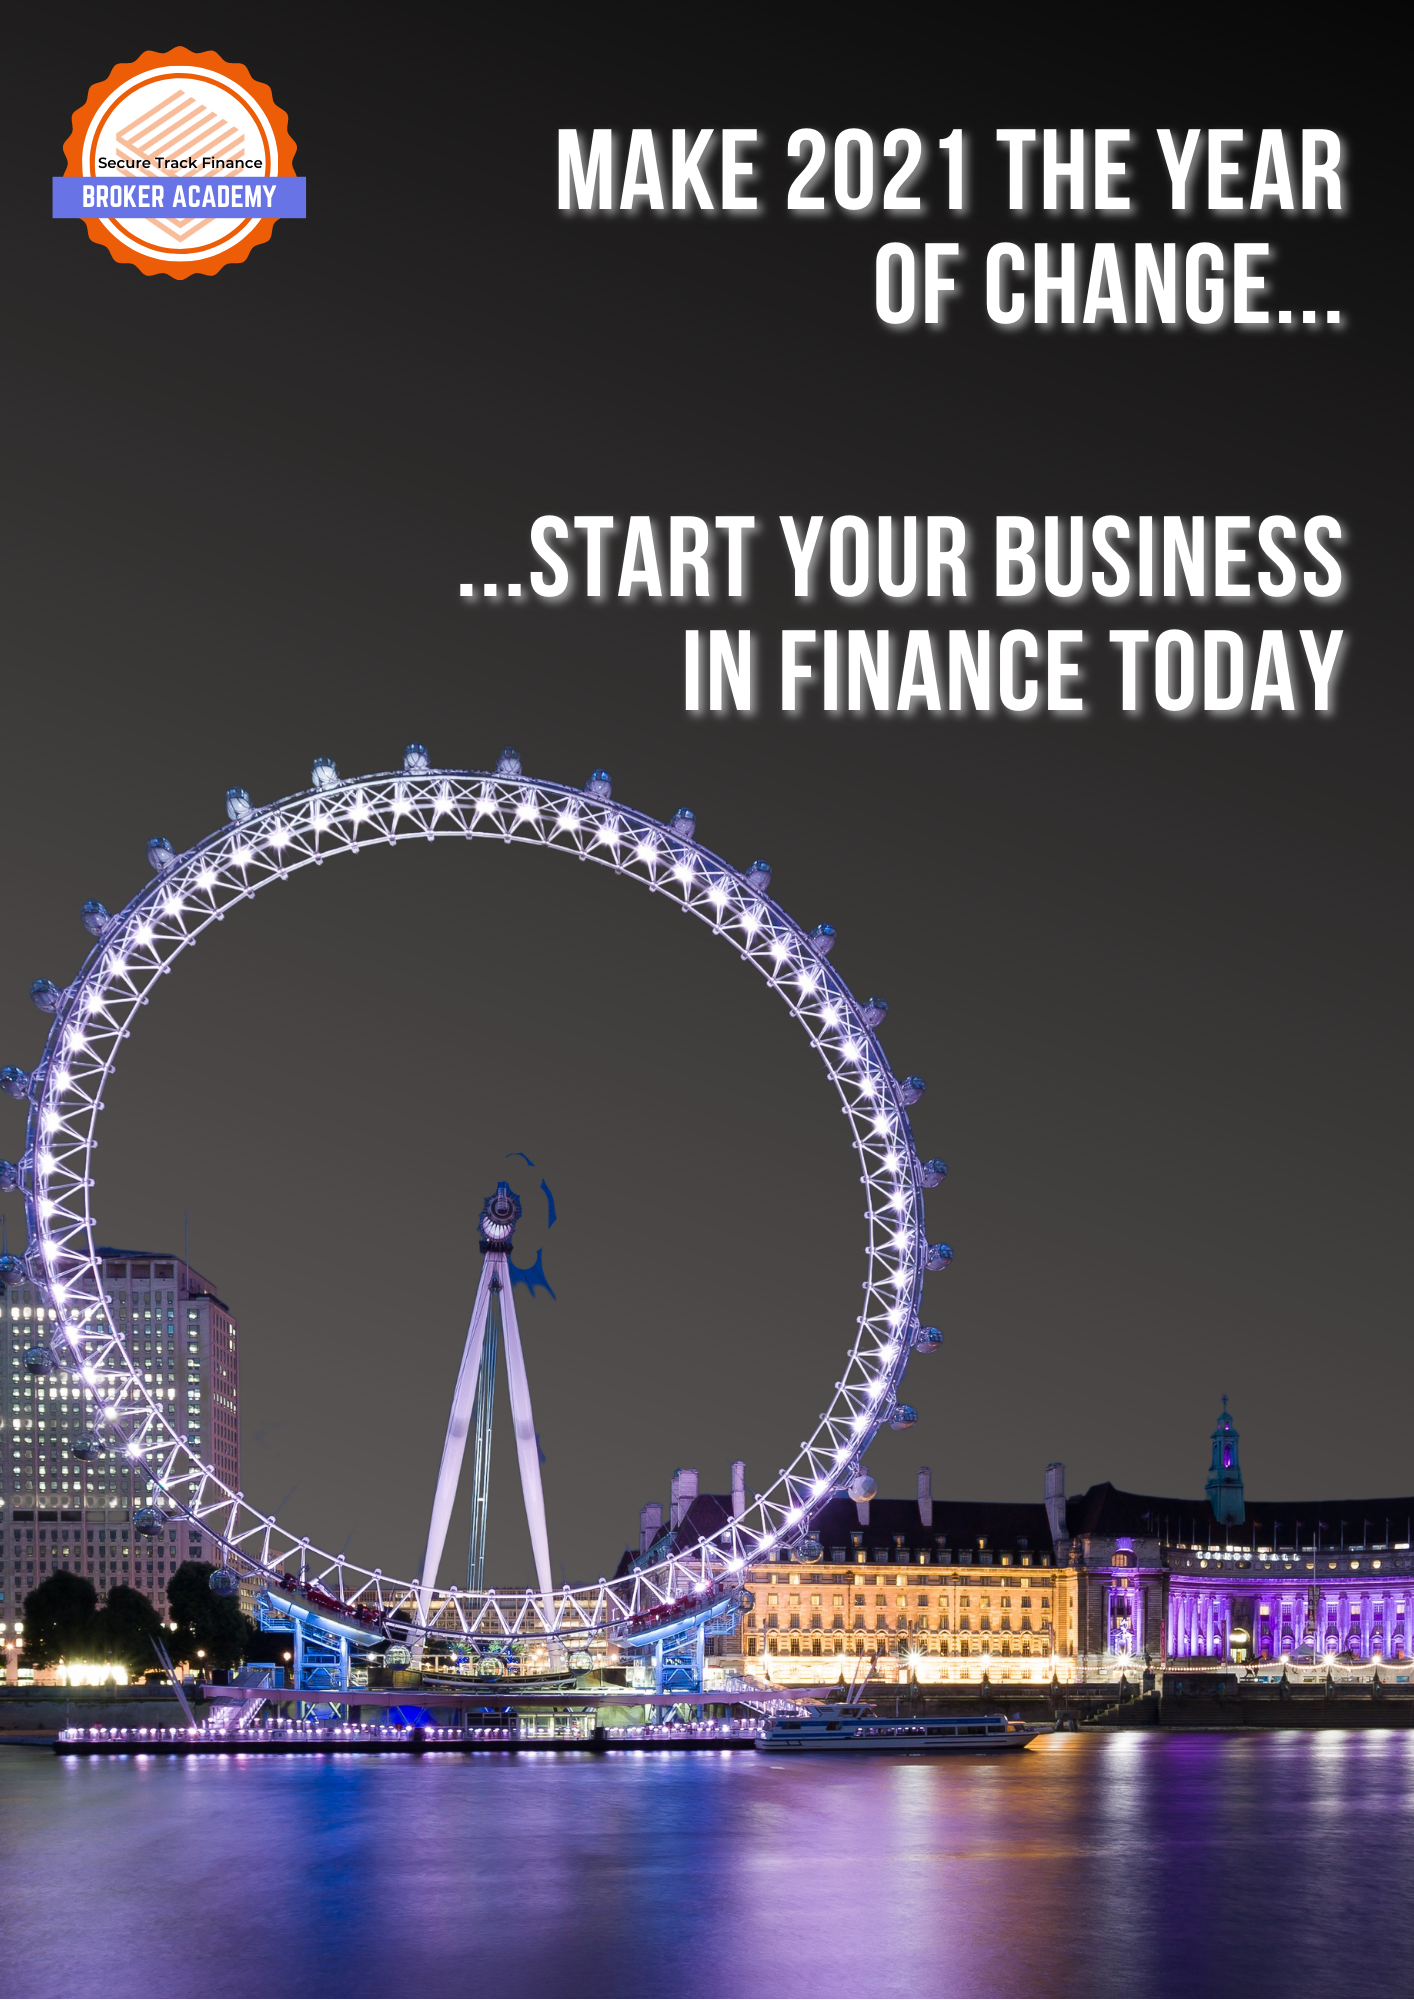 Start your business in finance in 2021